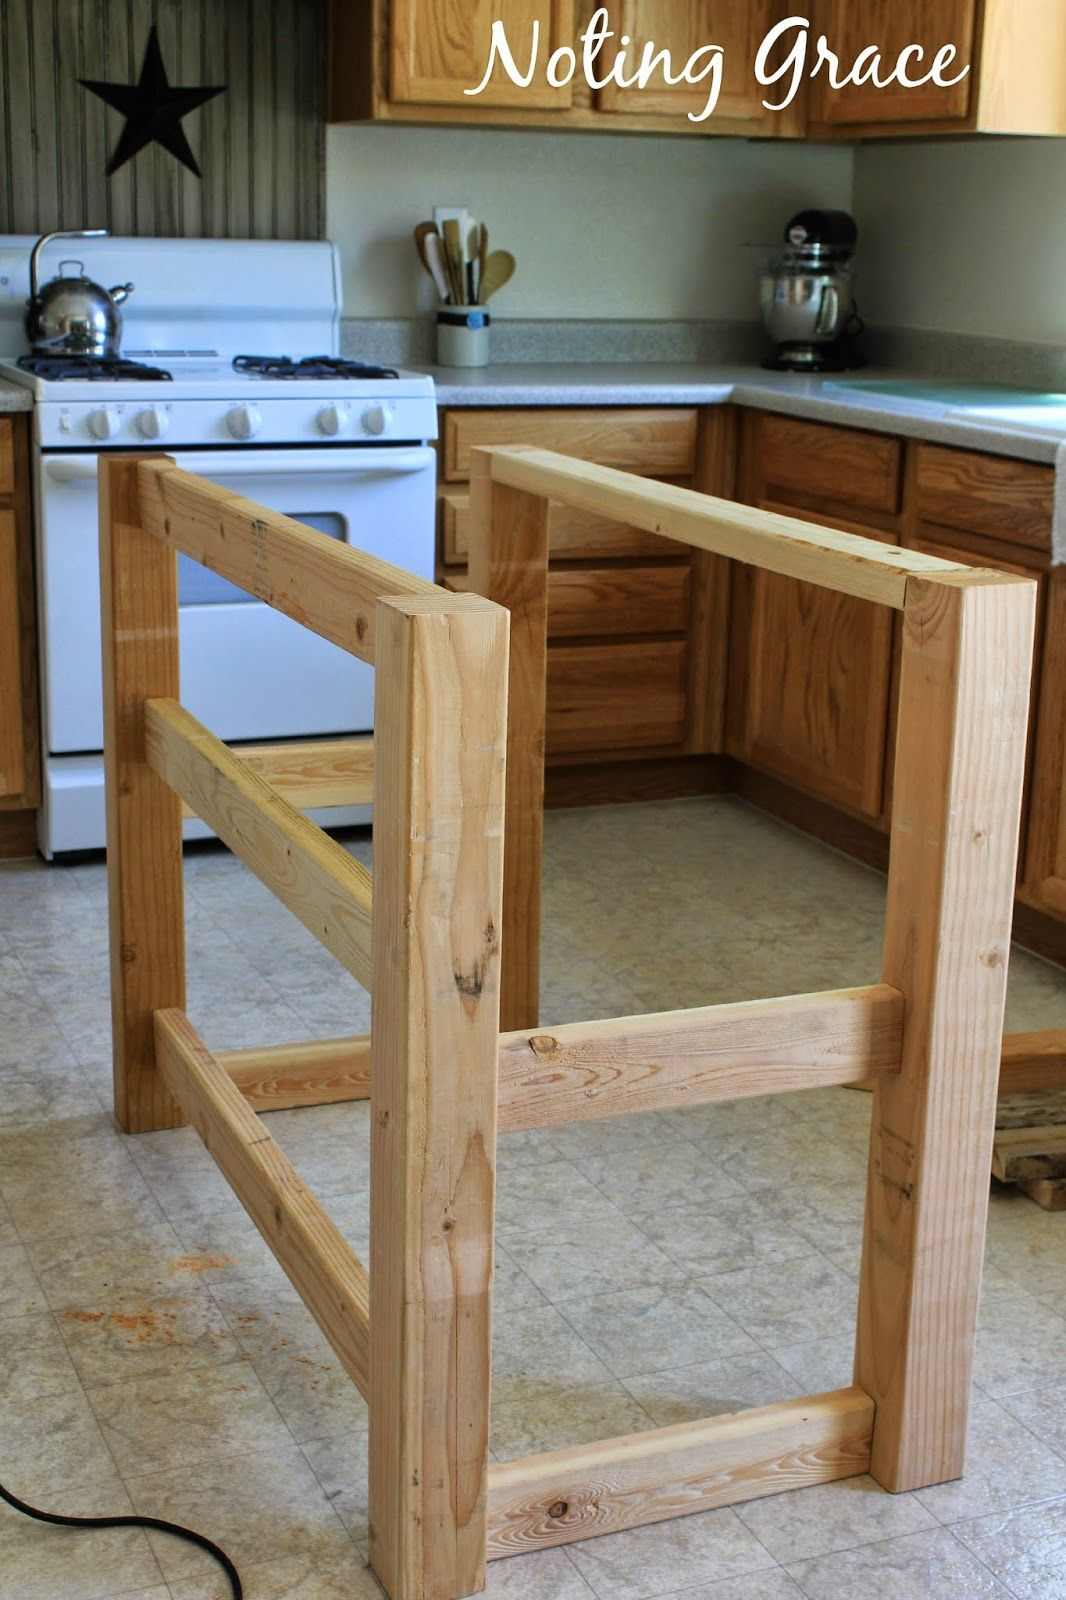 Noting Grace Diy Pallet Kitchen Island For Less Than 50  # Diy Pallete Cuisine